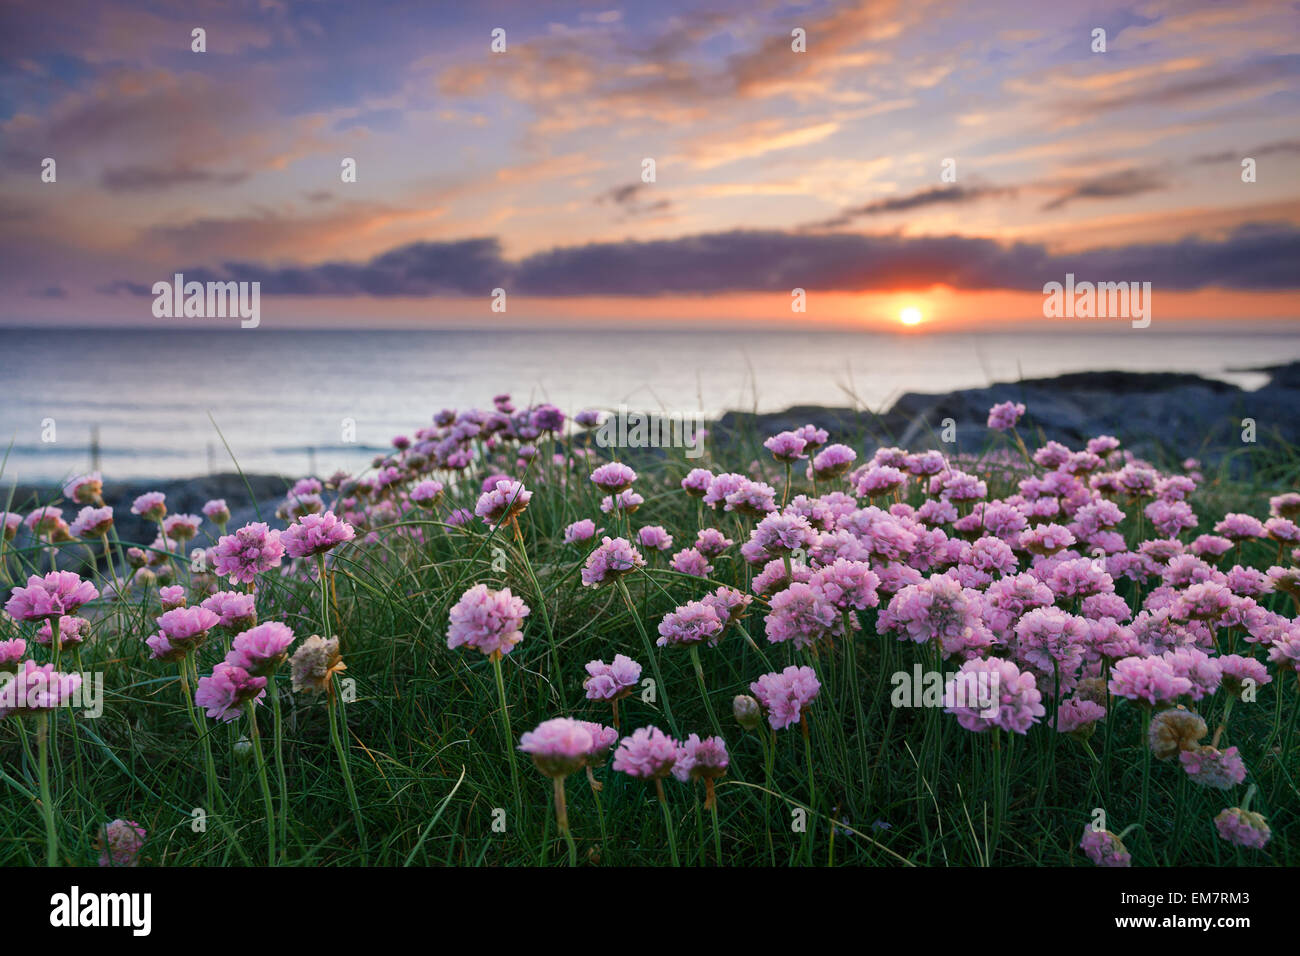 Pink flowers by the sea at sunset . Isle of Barra, Outer Hebrides, Scotland - Stock Image